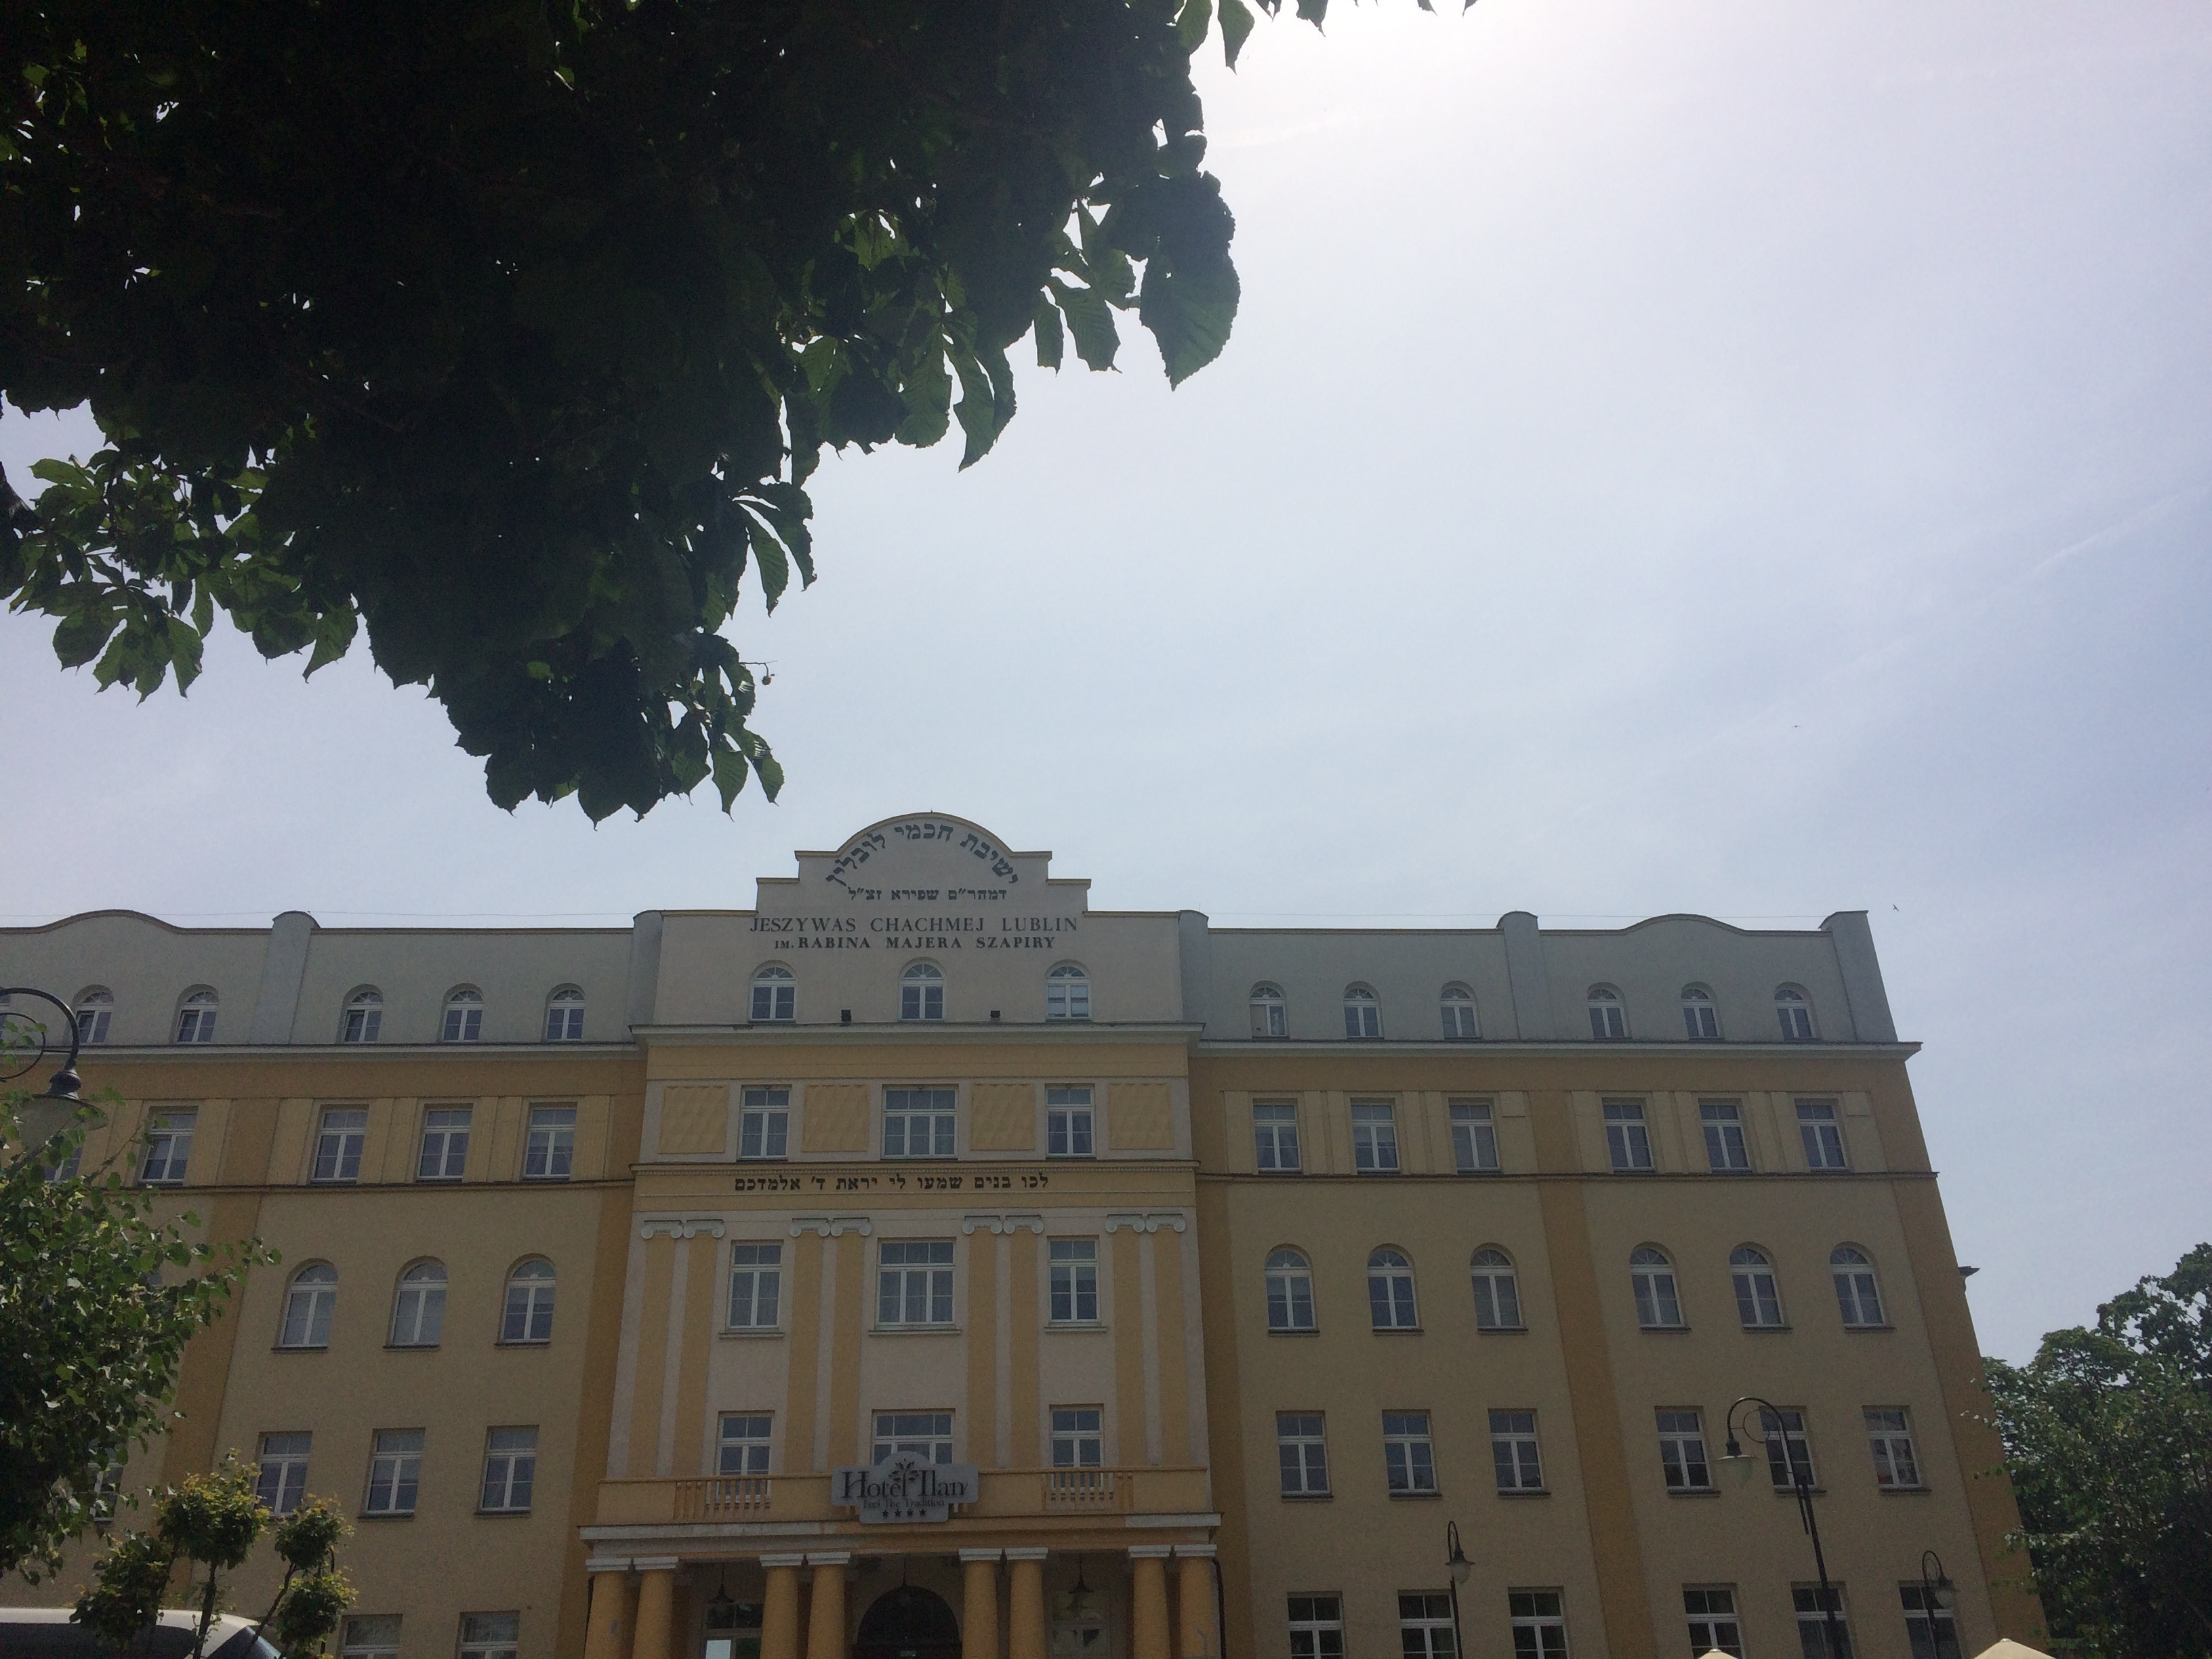 <p>The for­mer Chachmei Lublin Yeshi­va, now a&nbsp;hotel. Pho­to by the&nbsp;author.</p>